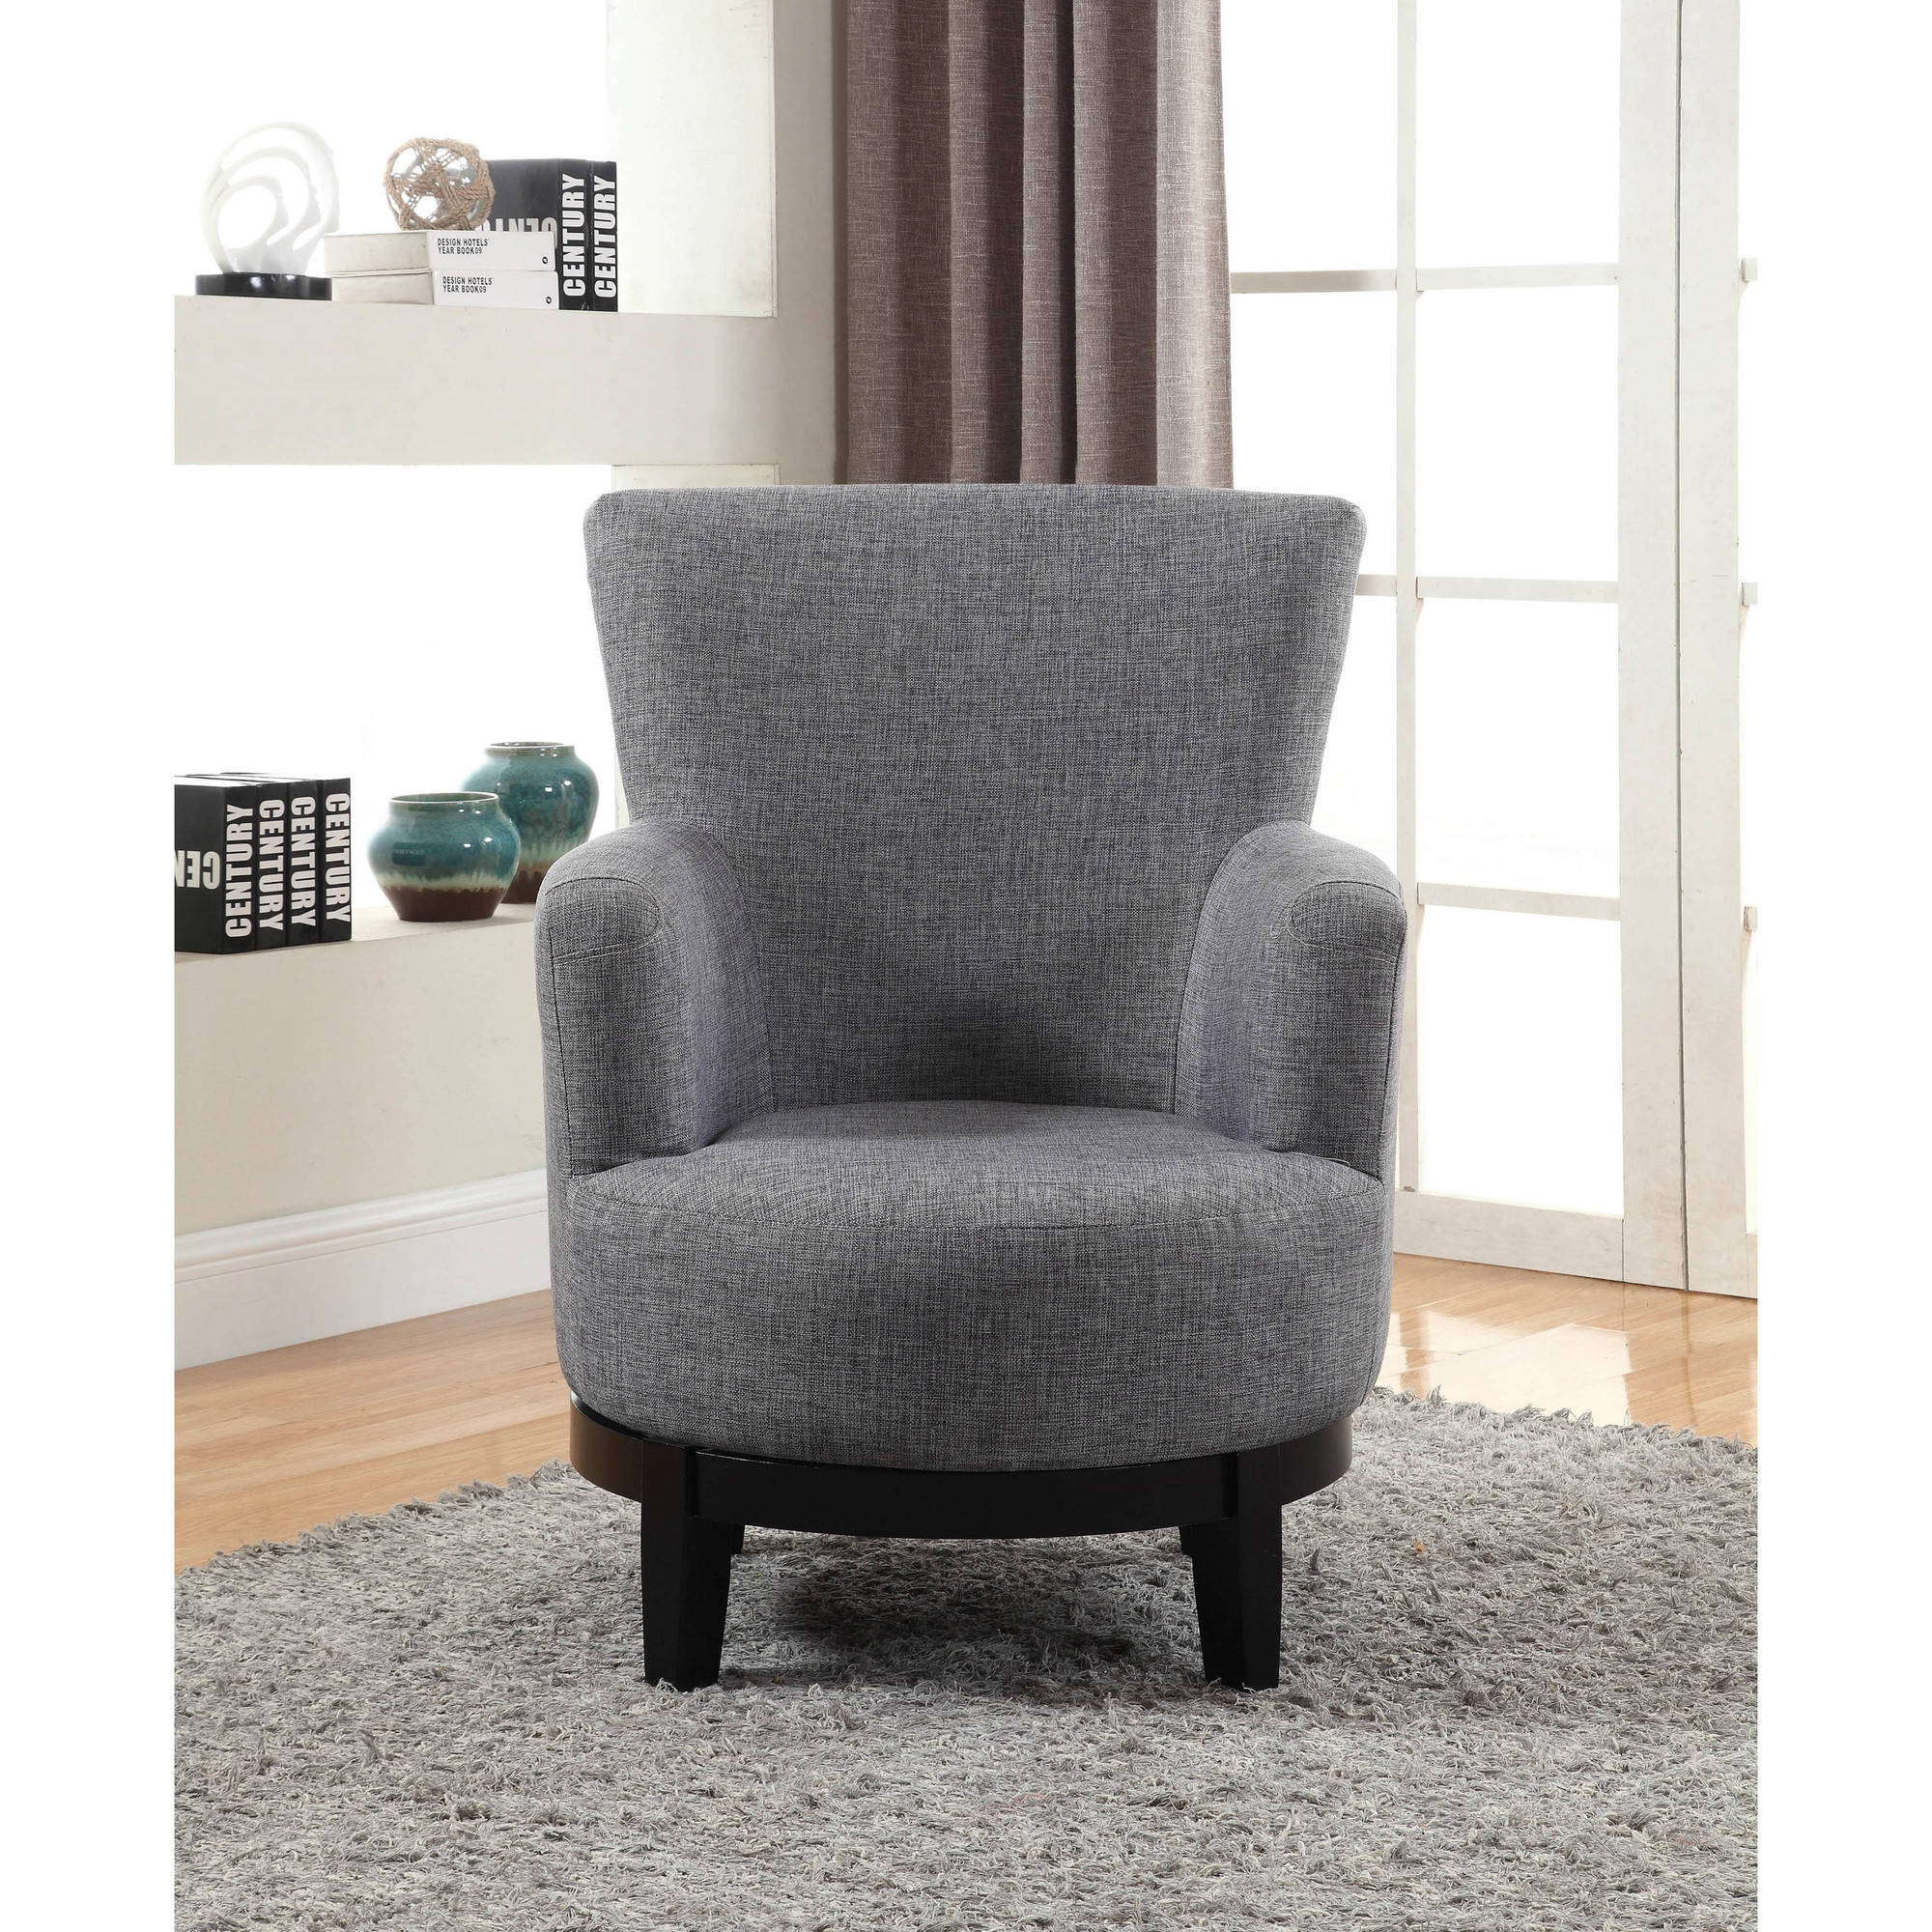 Astonishing Nathaniel Home Dominic Swivel Accent Chair Grey Onthecornerstone Fun Painted Chair Ideas Images Onthecornerstoneorg